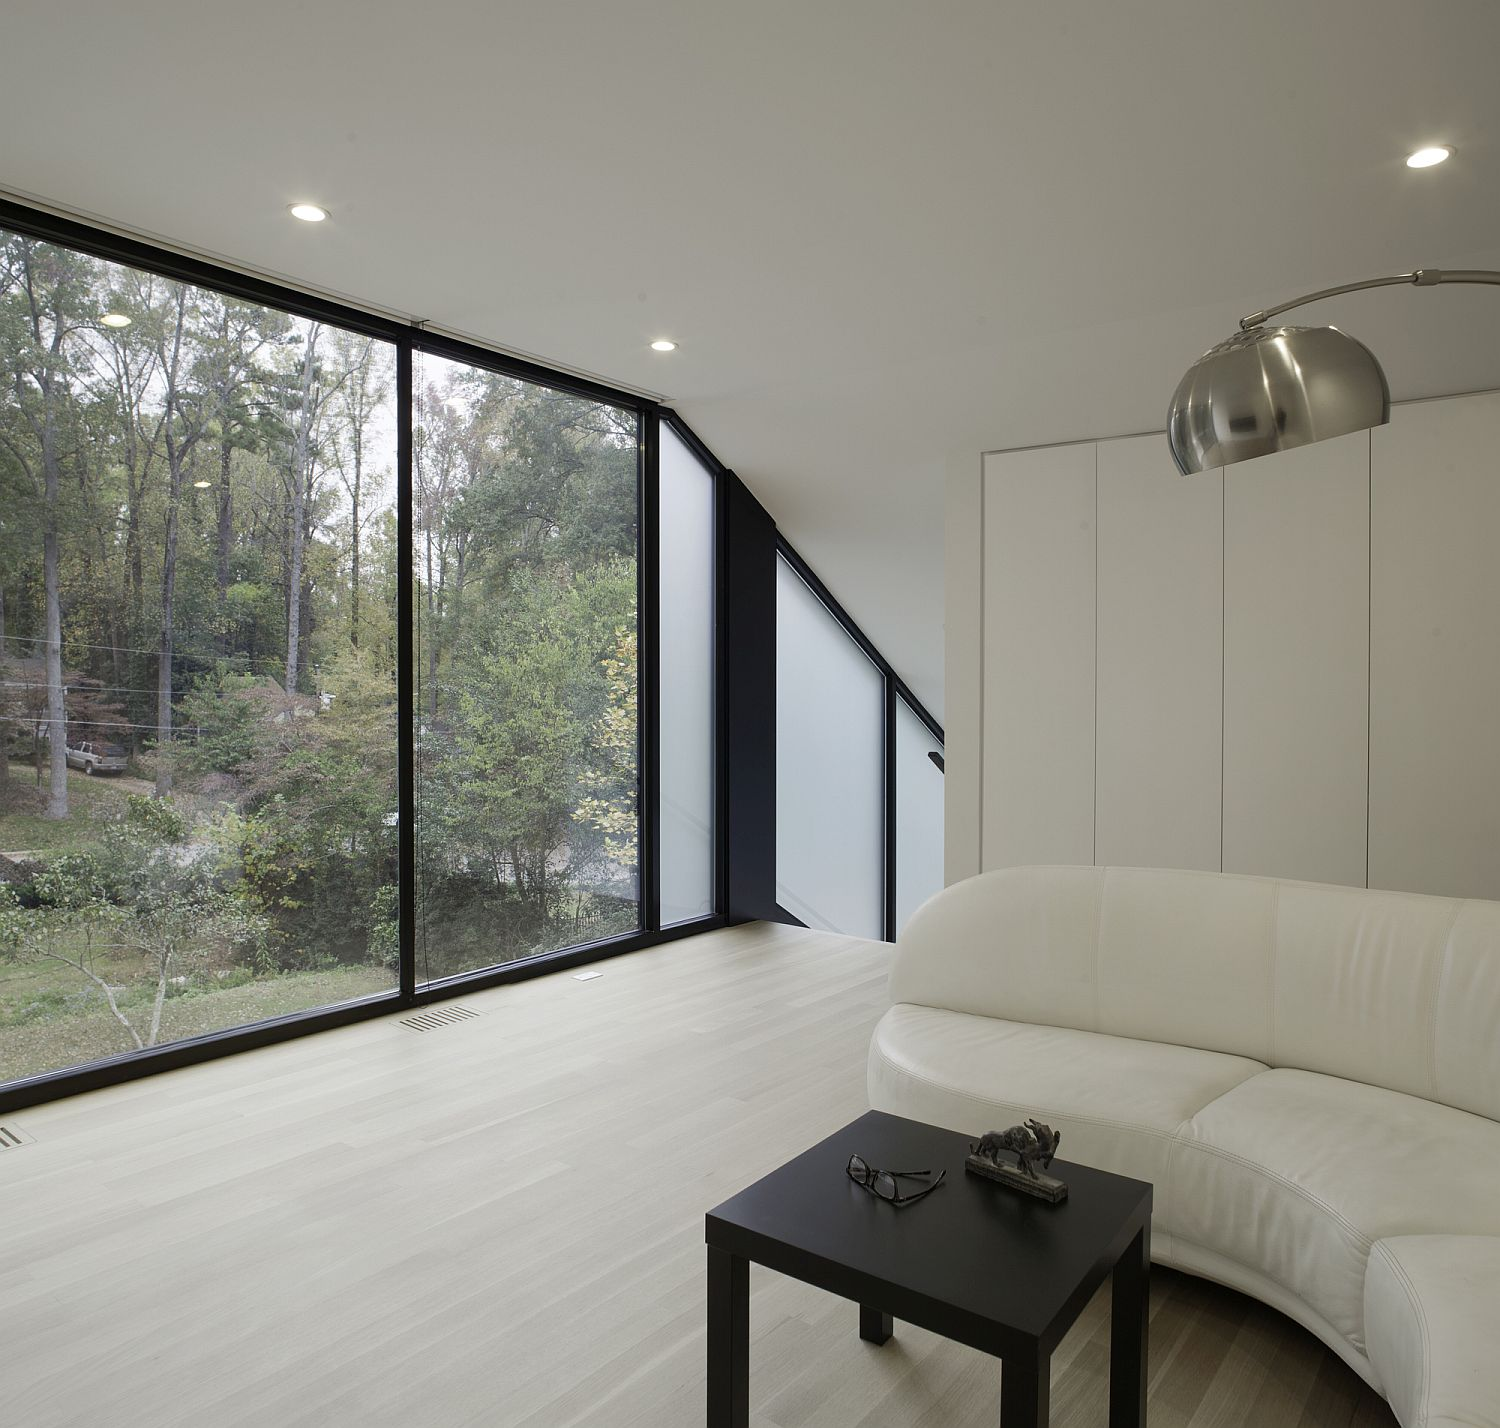 Dark framed windows bring contrast to the contemporary interior in white